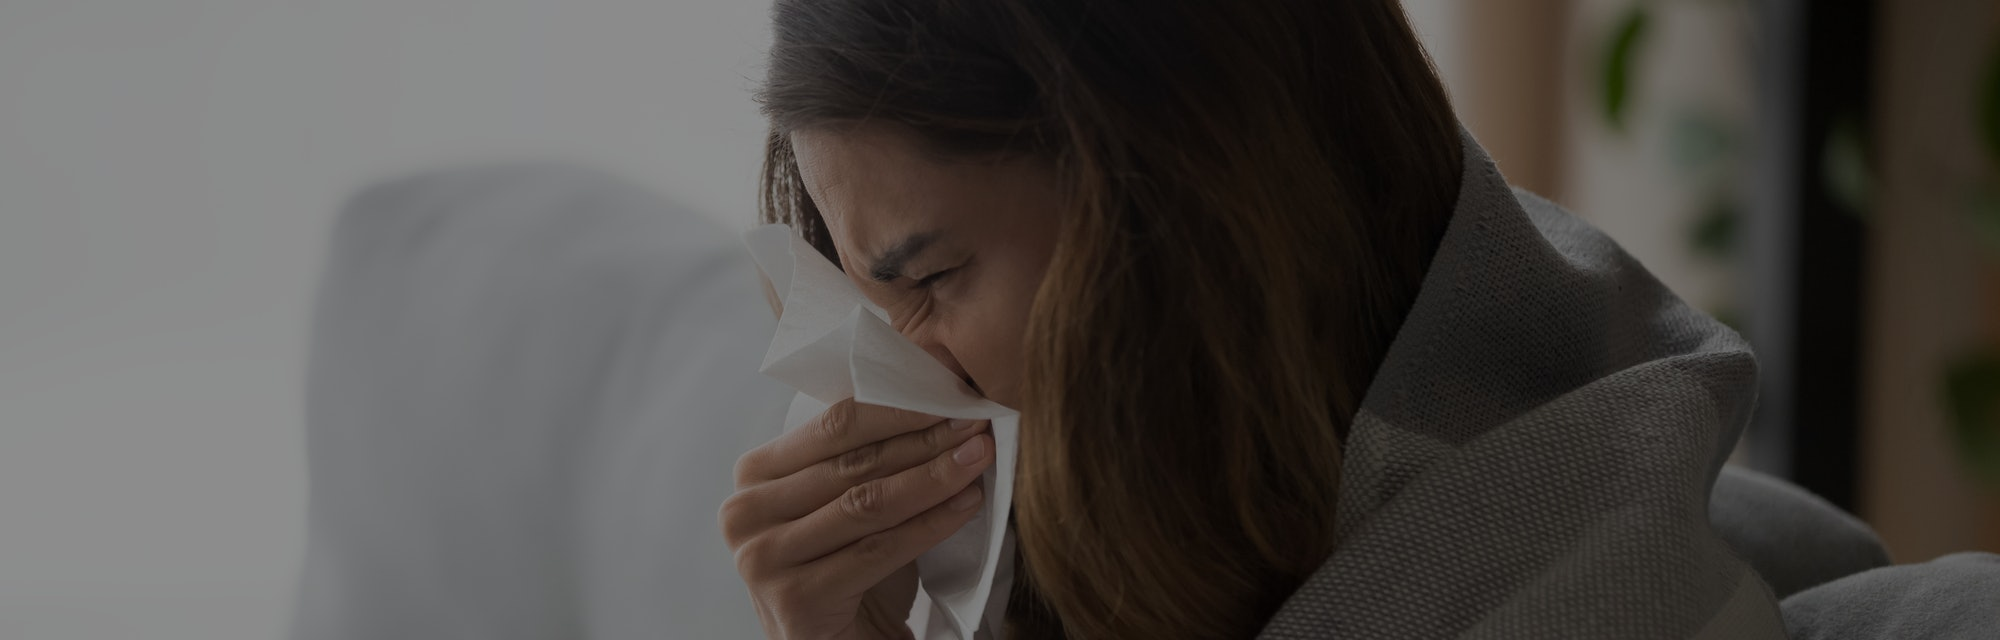 This woman blowing her nose could be staying home from work because of the flu.